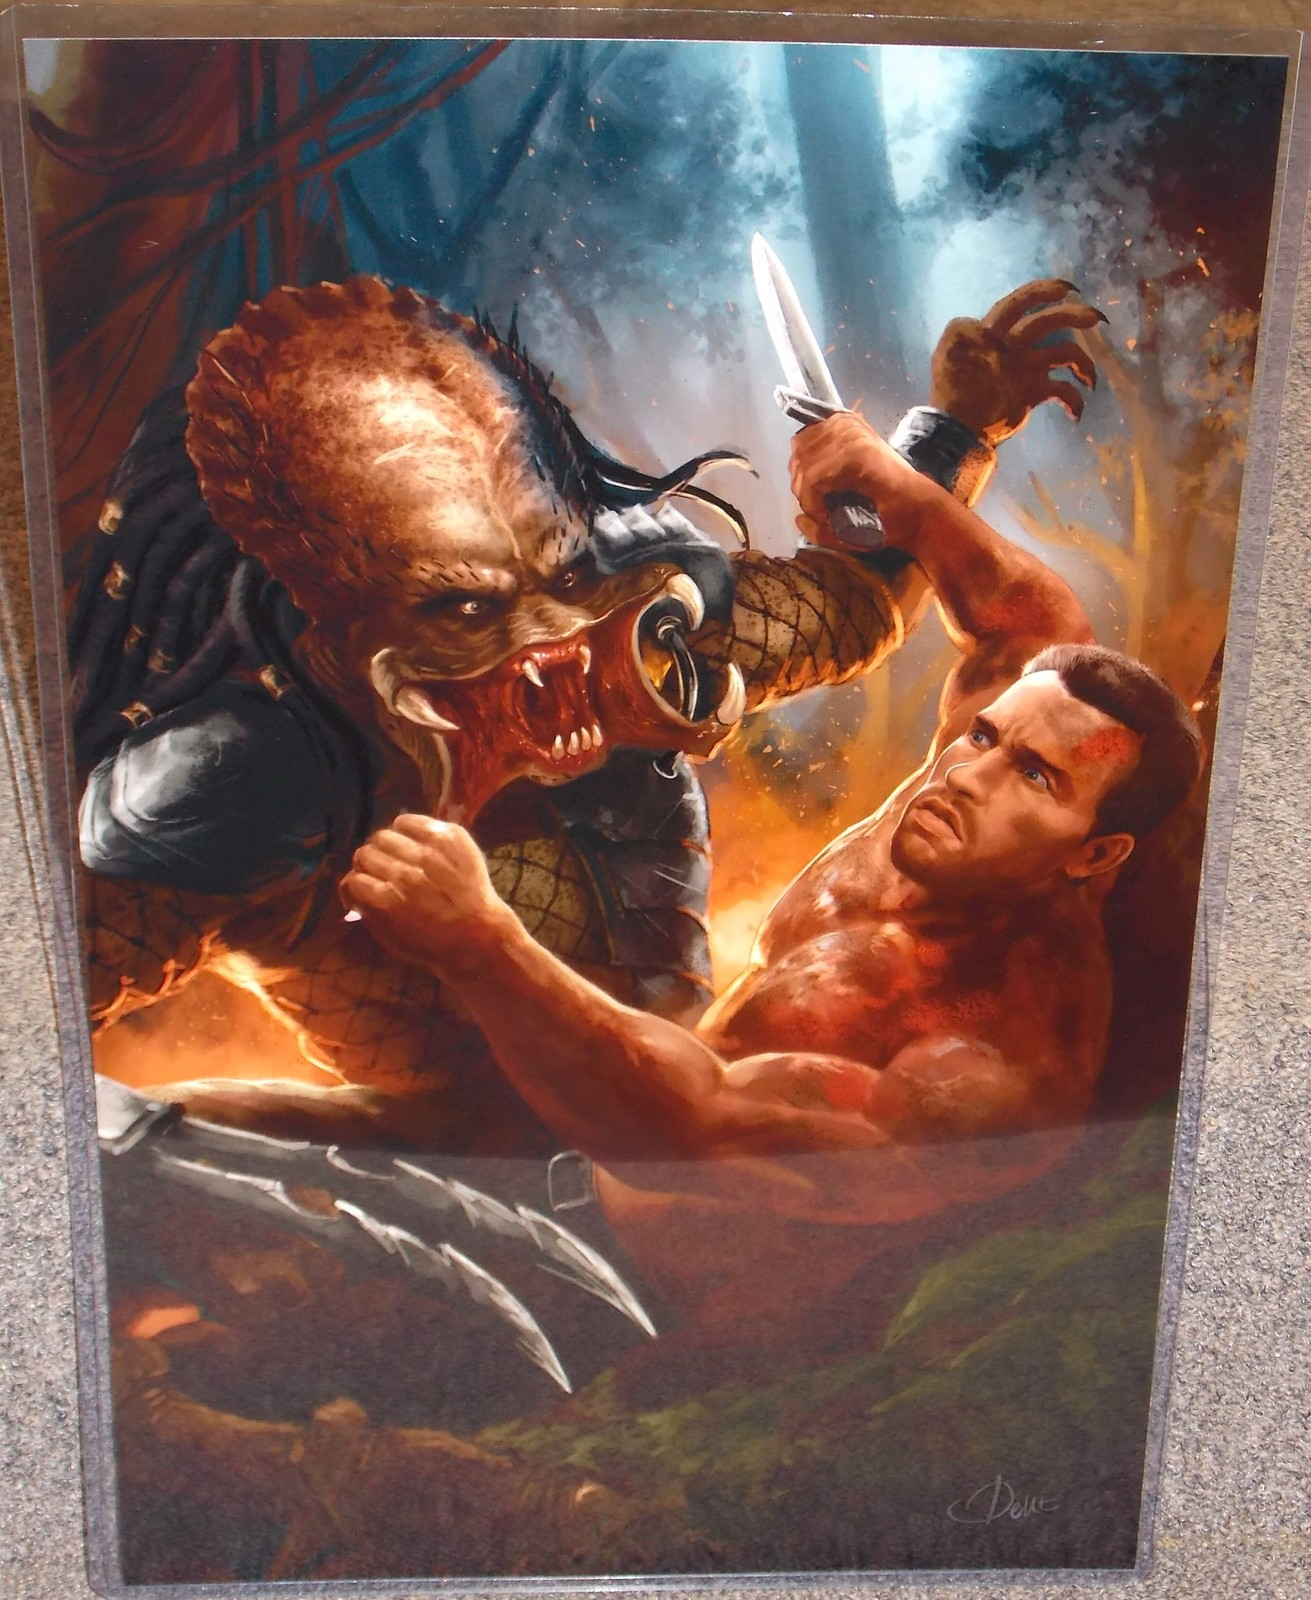 The Predator vs Dutch Glossy Print 11 x 17 In Hard Plastic Sleeve